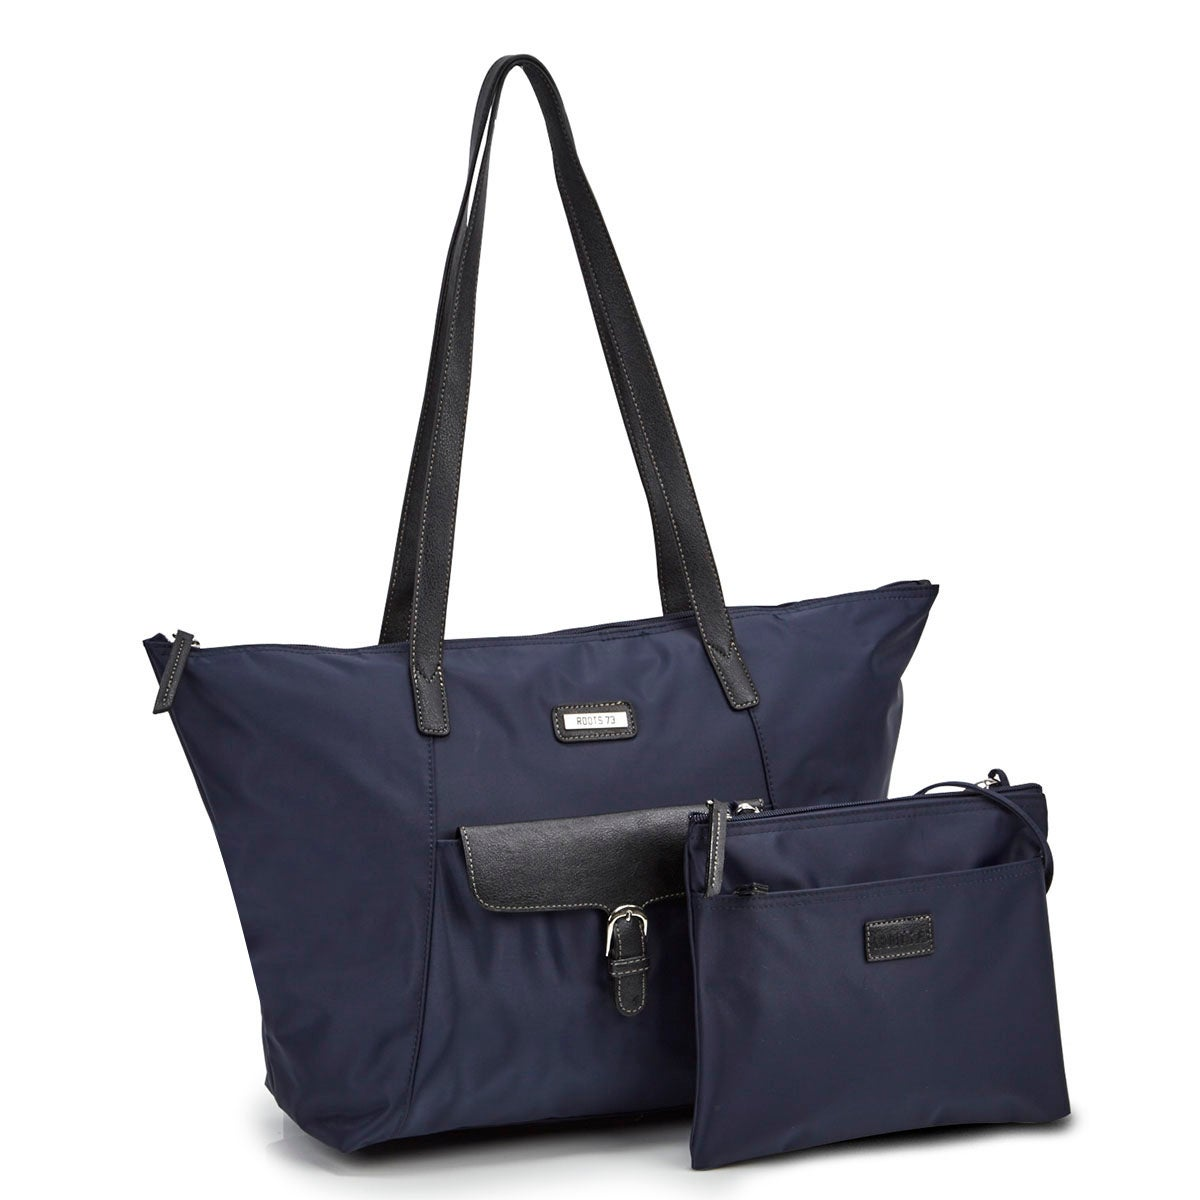 Women's ROOTS73 R4866 navy 2 in 1 tote bag